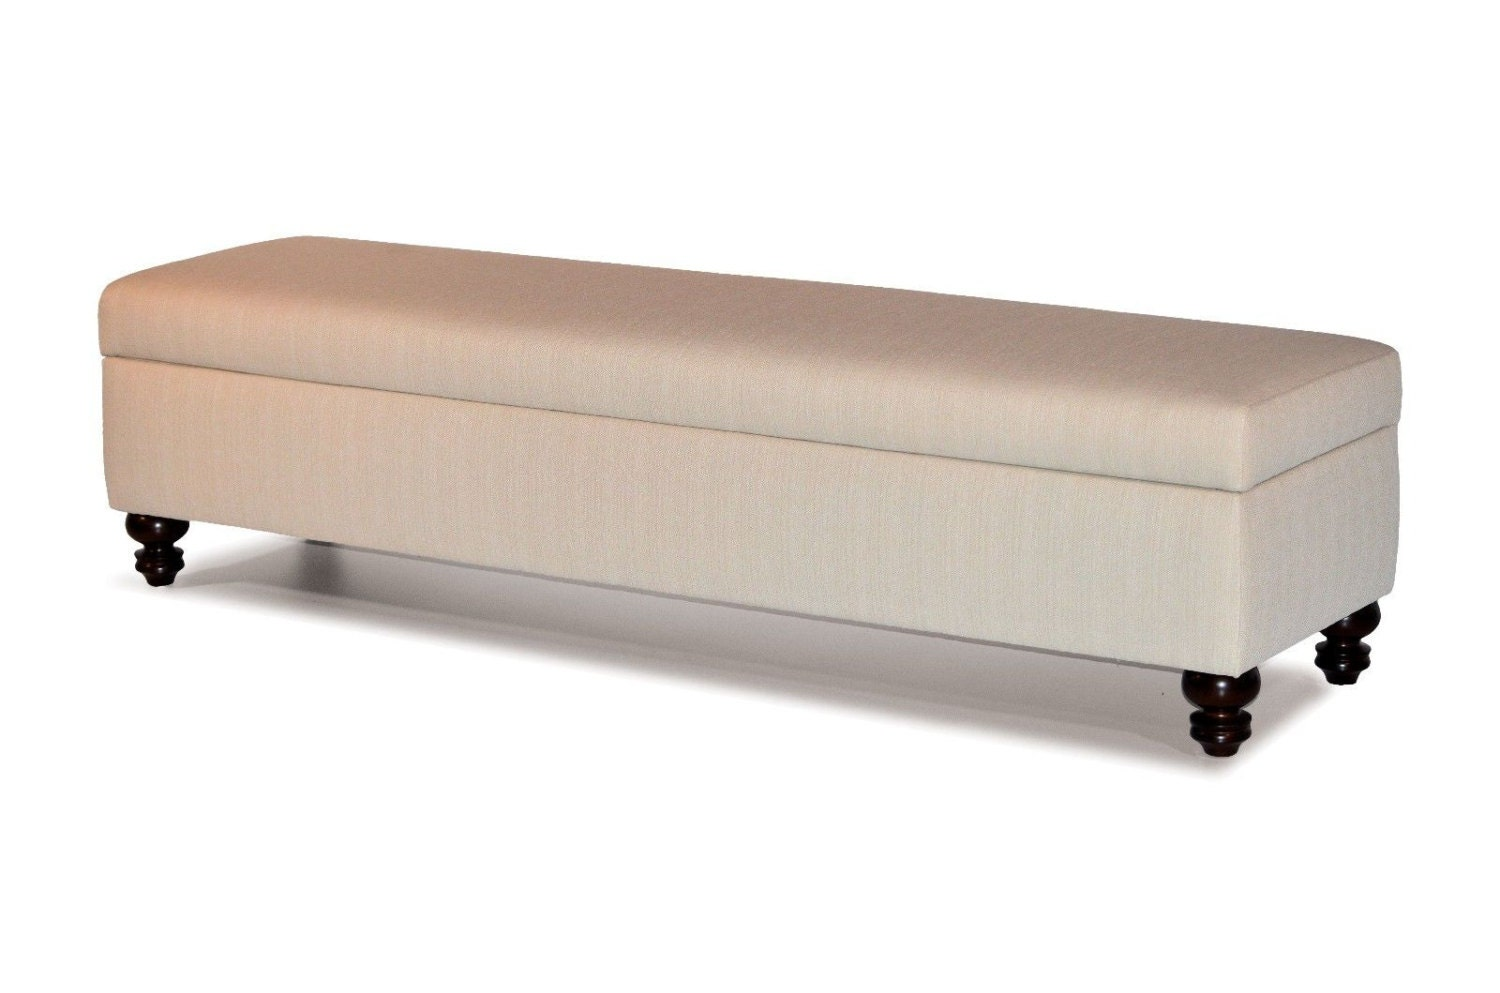 #80634B Natural Color Fabric Upholstered Storage Bench Ottoman Bed Chest with 1500x993 px of Recommended Fabric Storage Bench 9931500 save image @ avoidforclosure.info